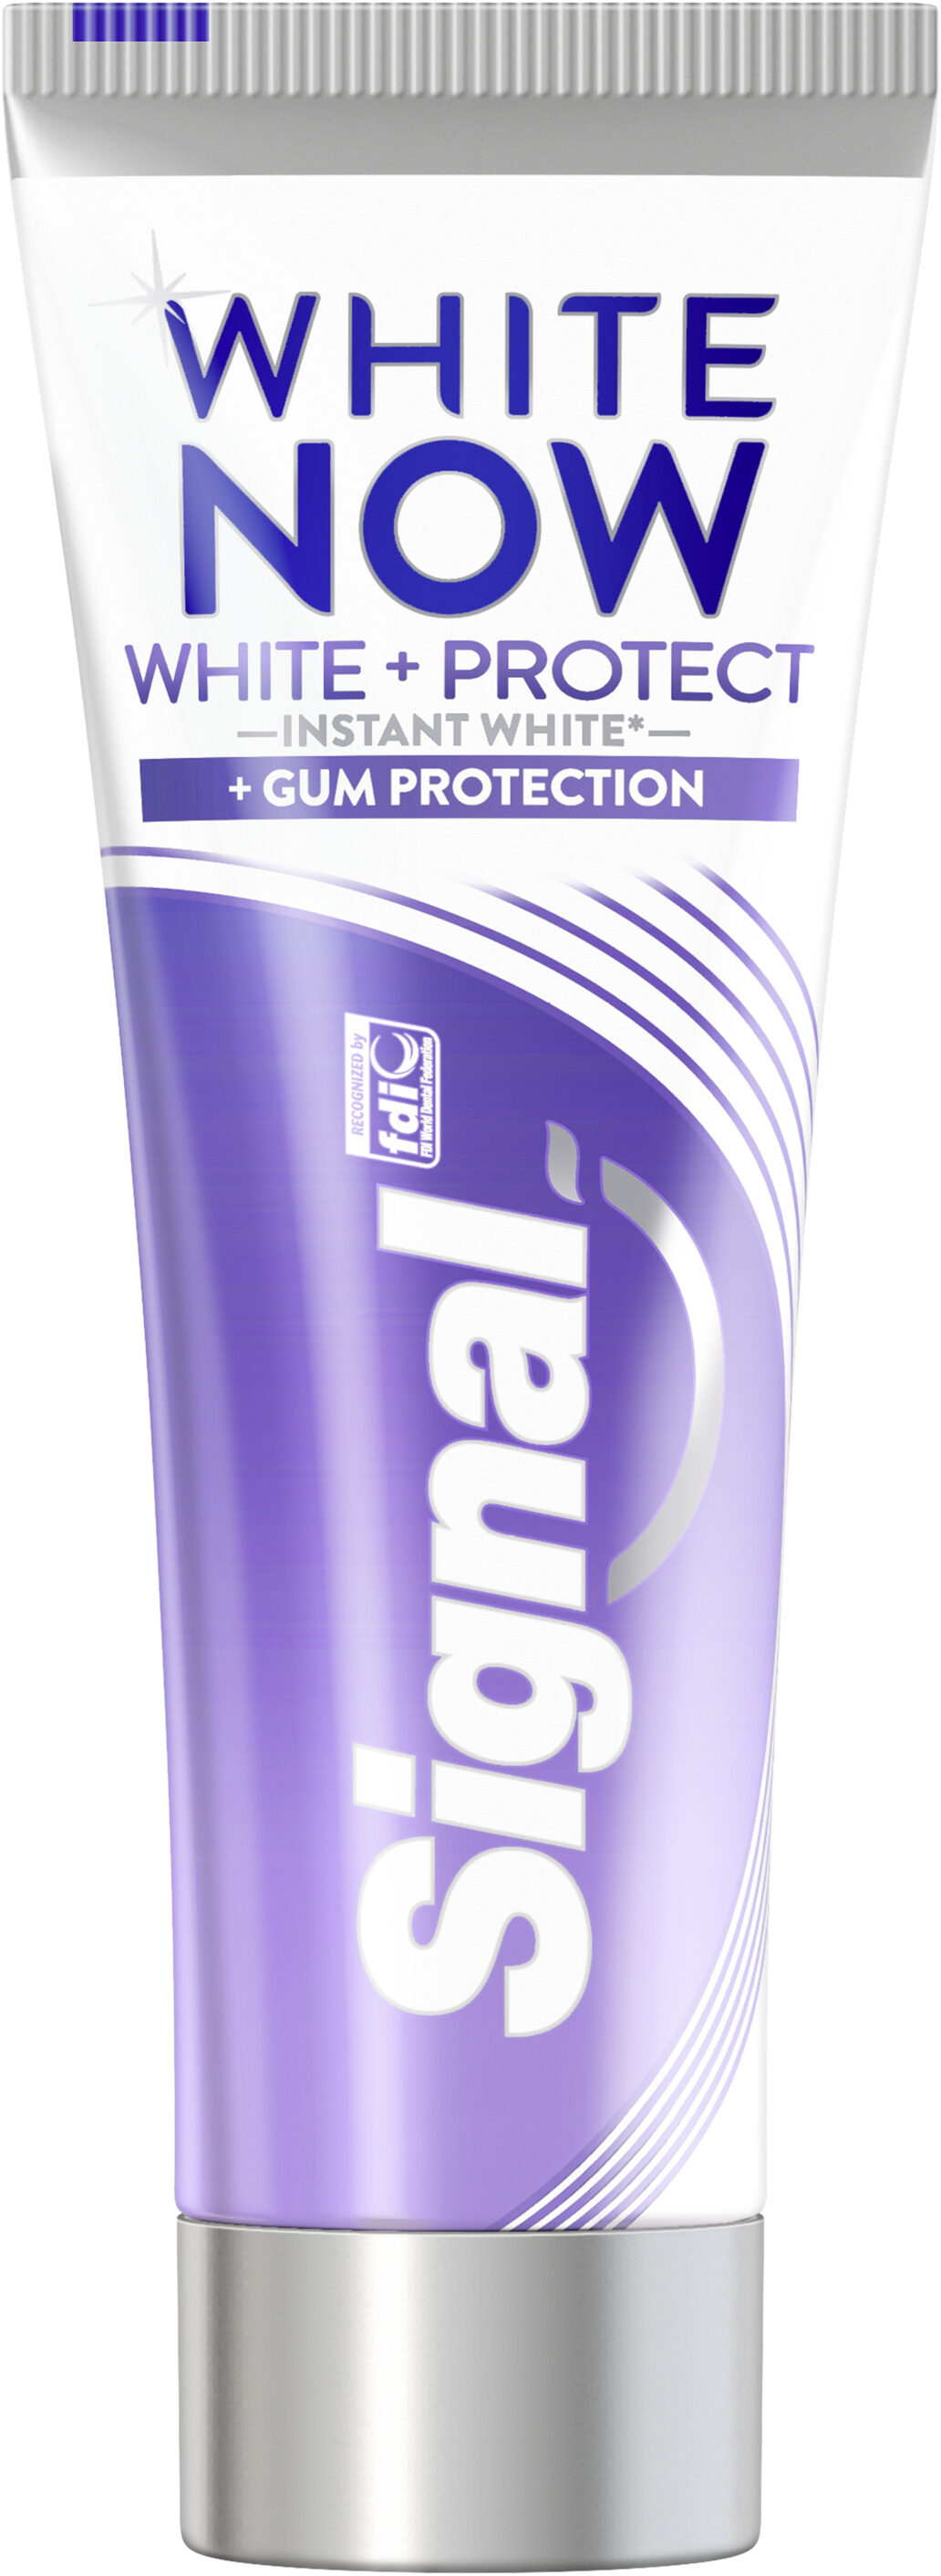 Signal White Now Dentifrice White + Protect Soin Gencives - Product - fr